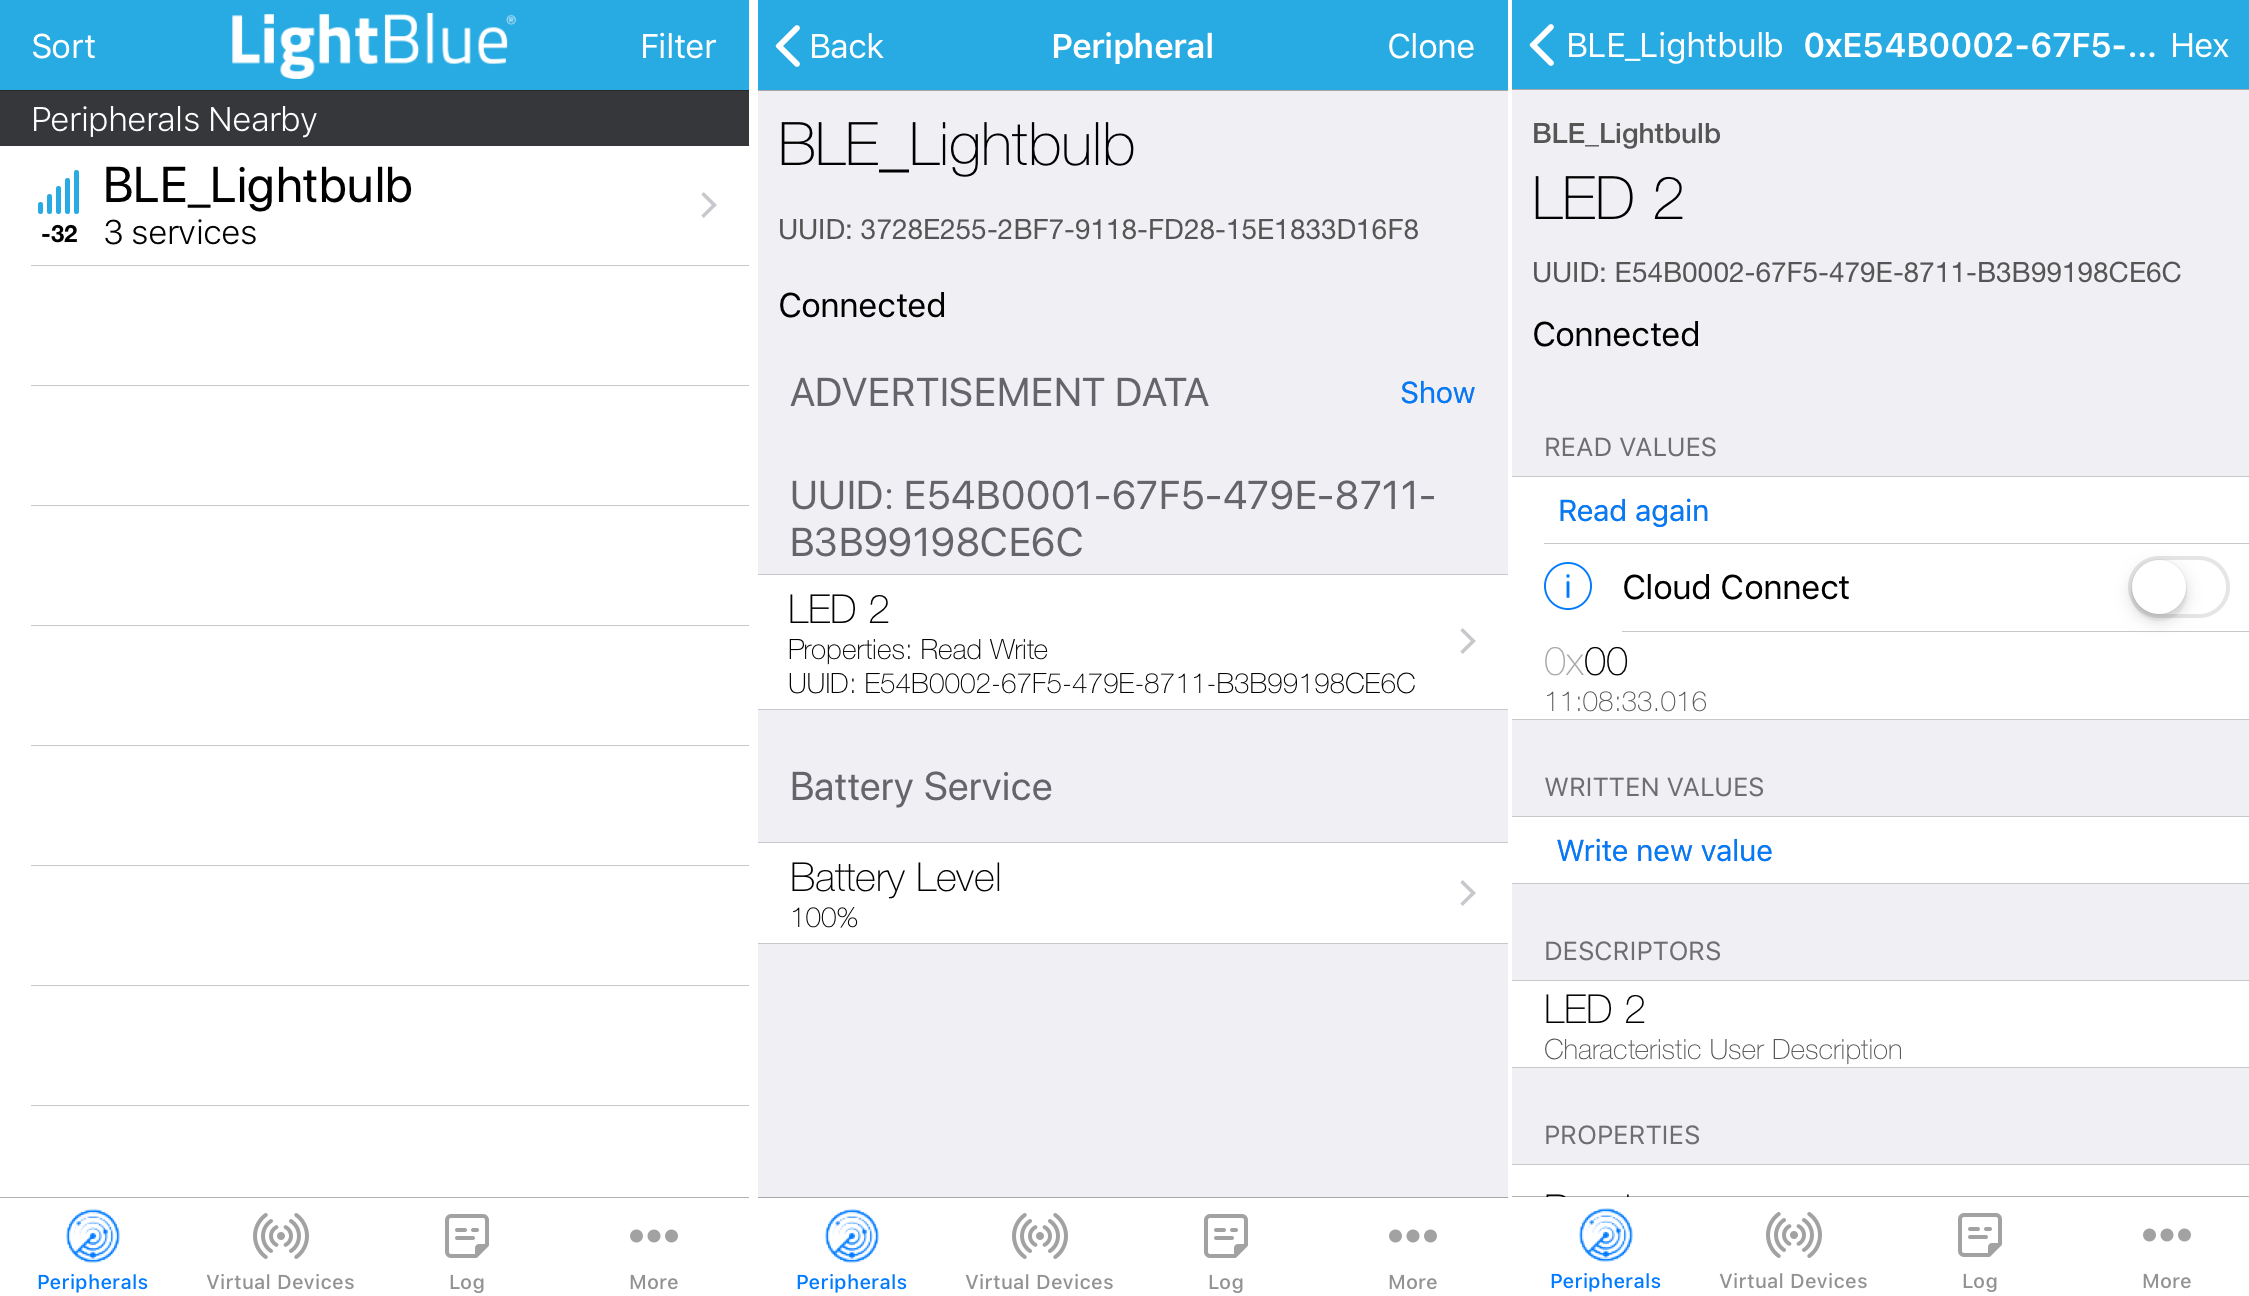 LightBlue showing correct 3 services